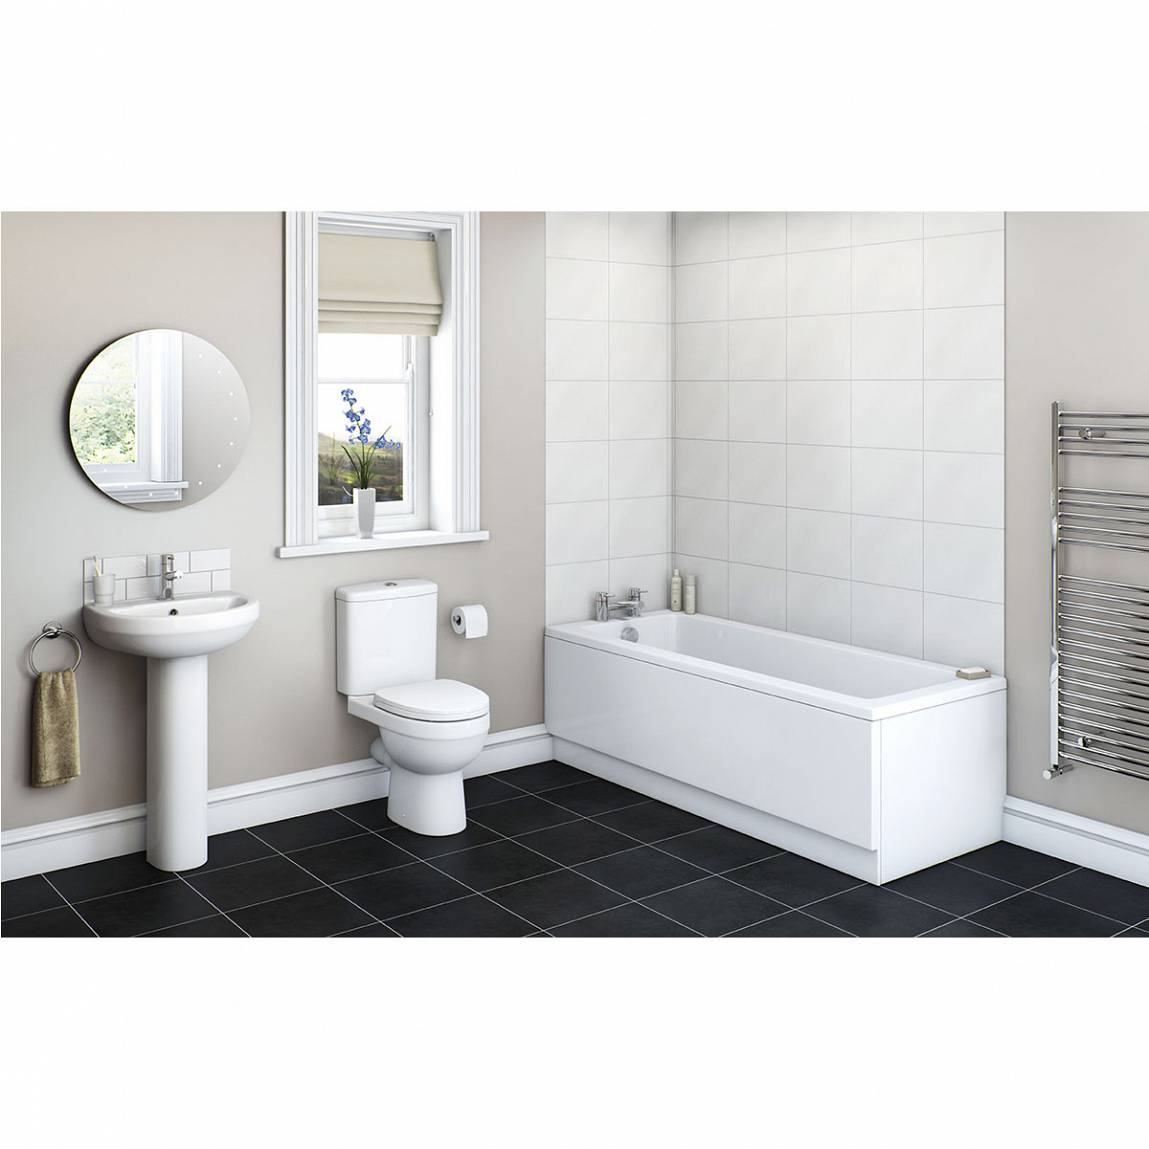 Image of Energy Bathroom Set with Kensington 1500 x 700 Bath Suite